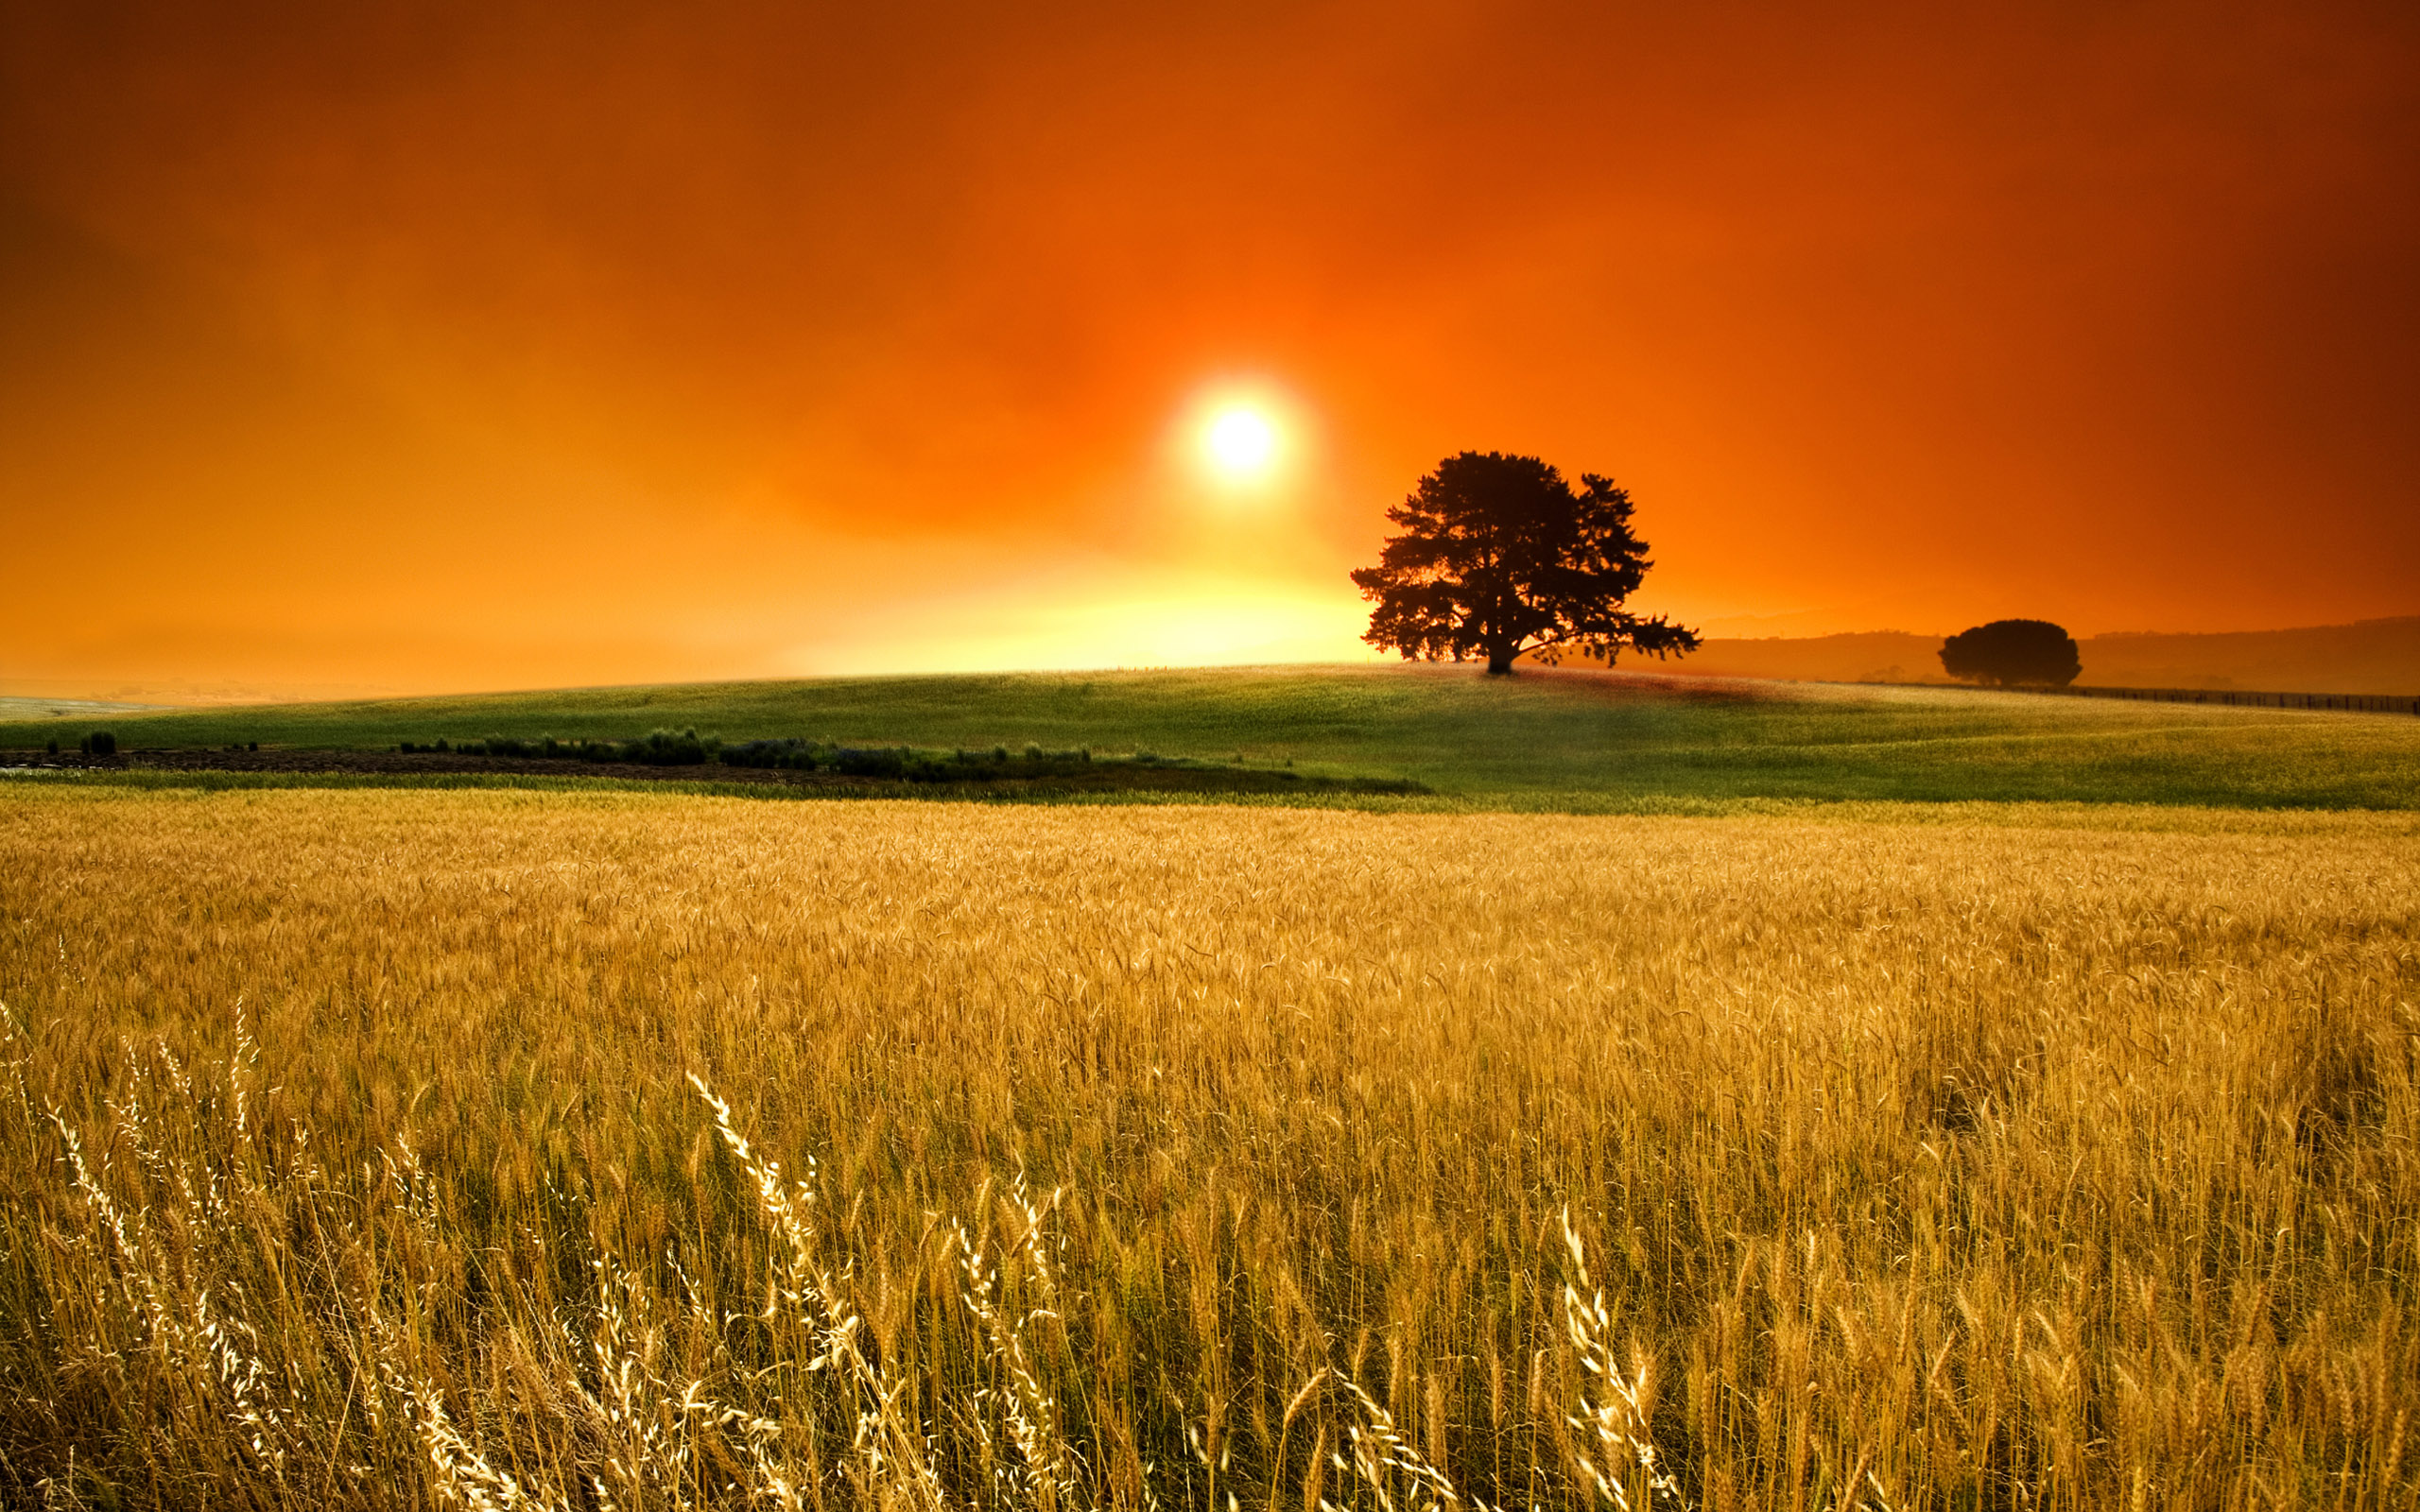 Sunny Day Wallpapers | HD Wallpapers